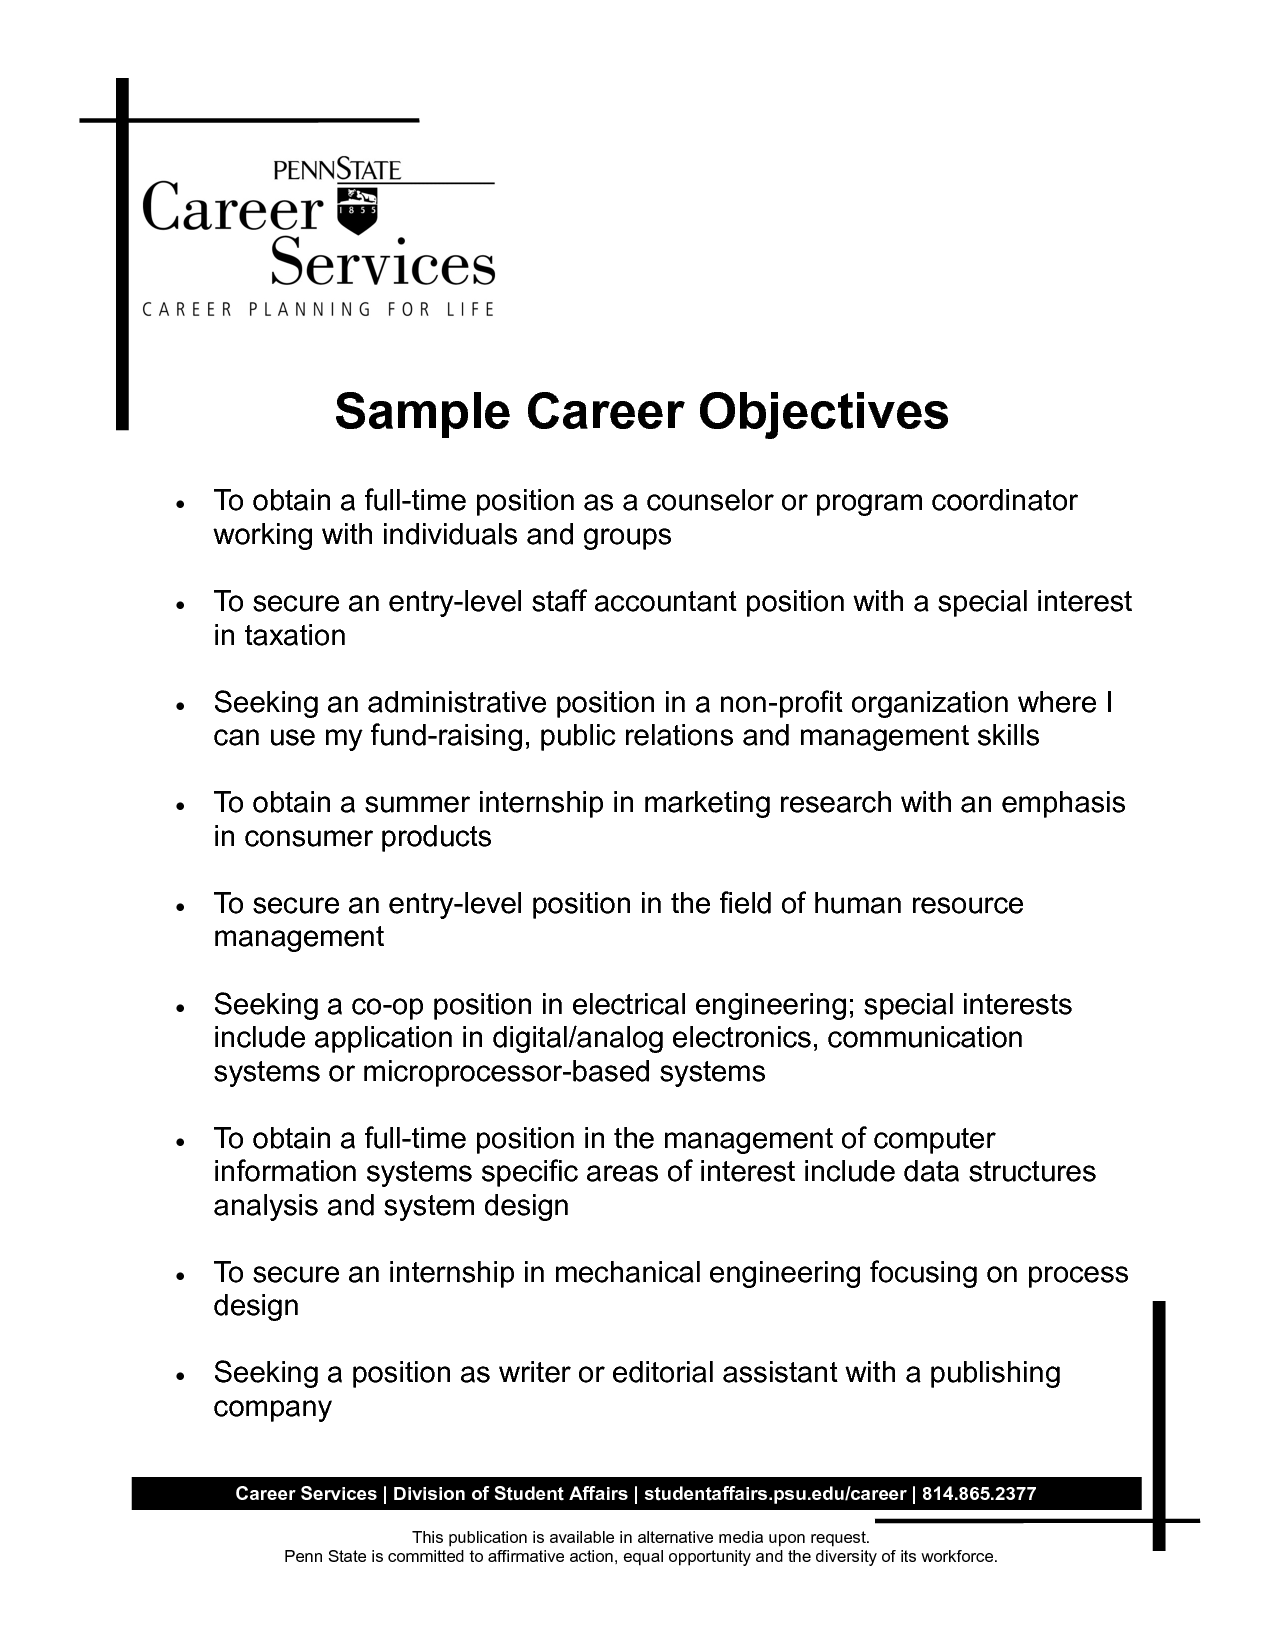 sample objectives in resume for office staff - how to write career objective with sample